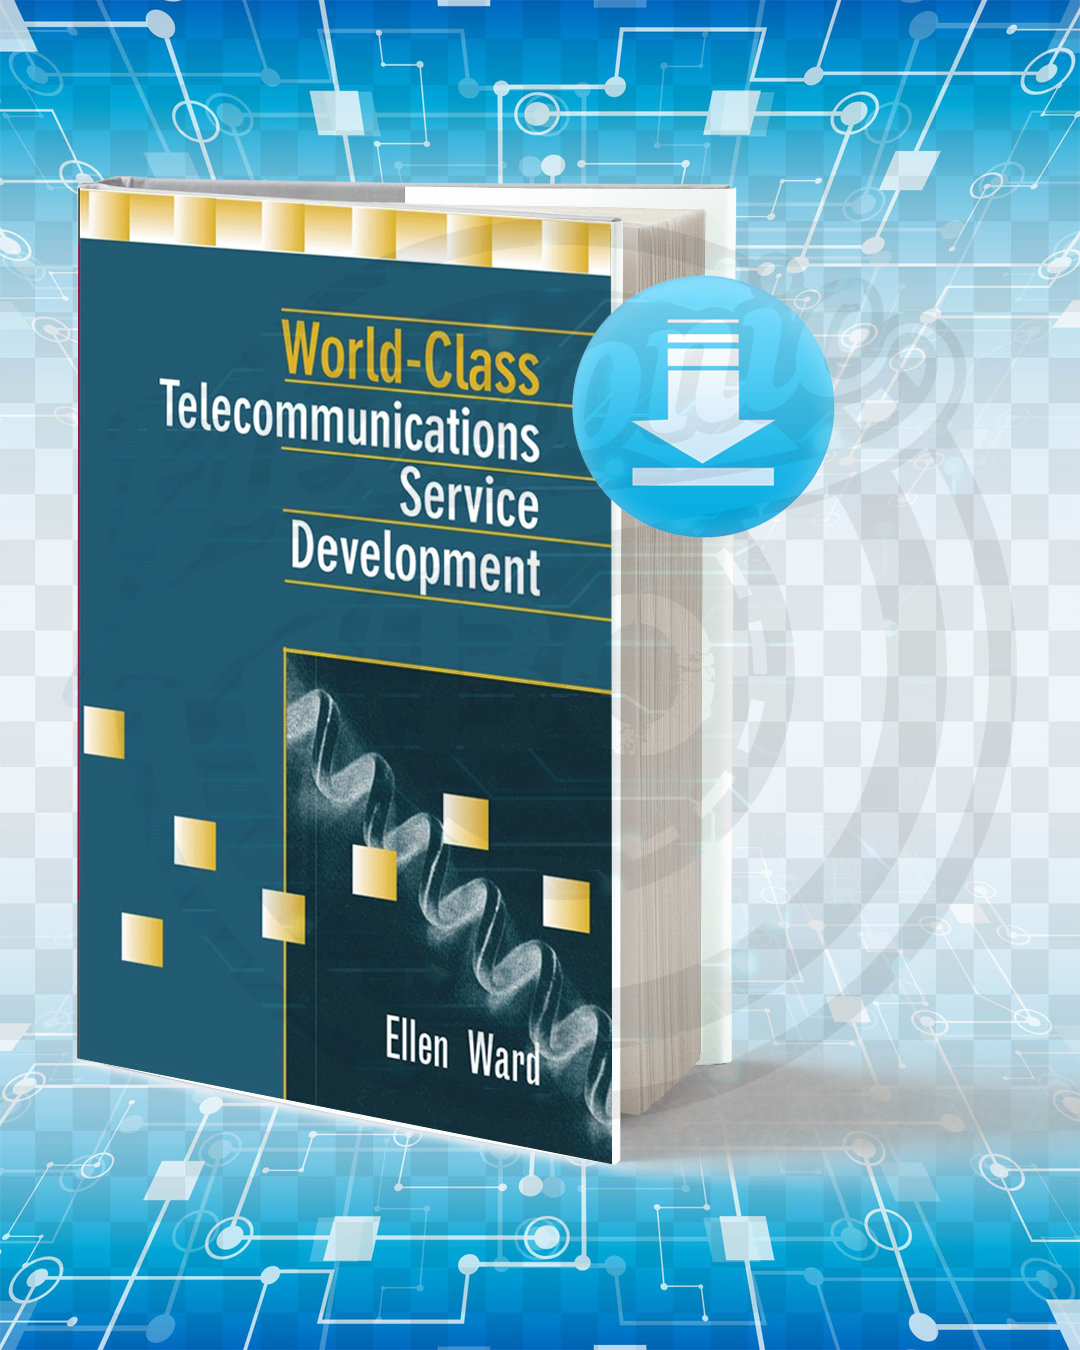 Free Book World-Class Telecommunications Service Development pdf.